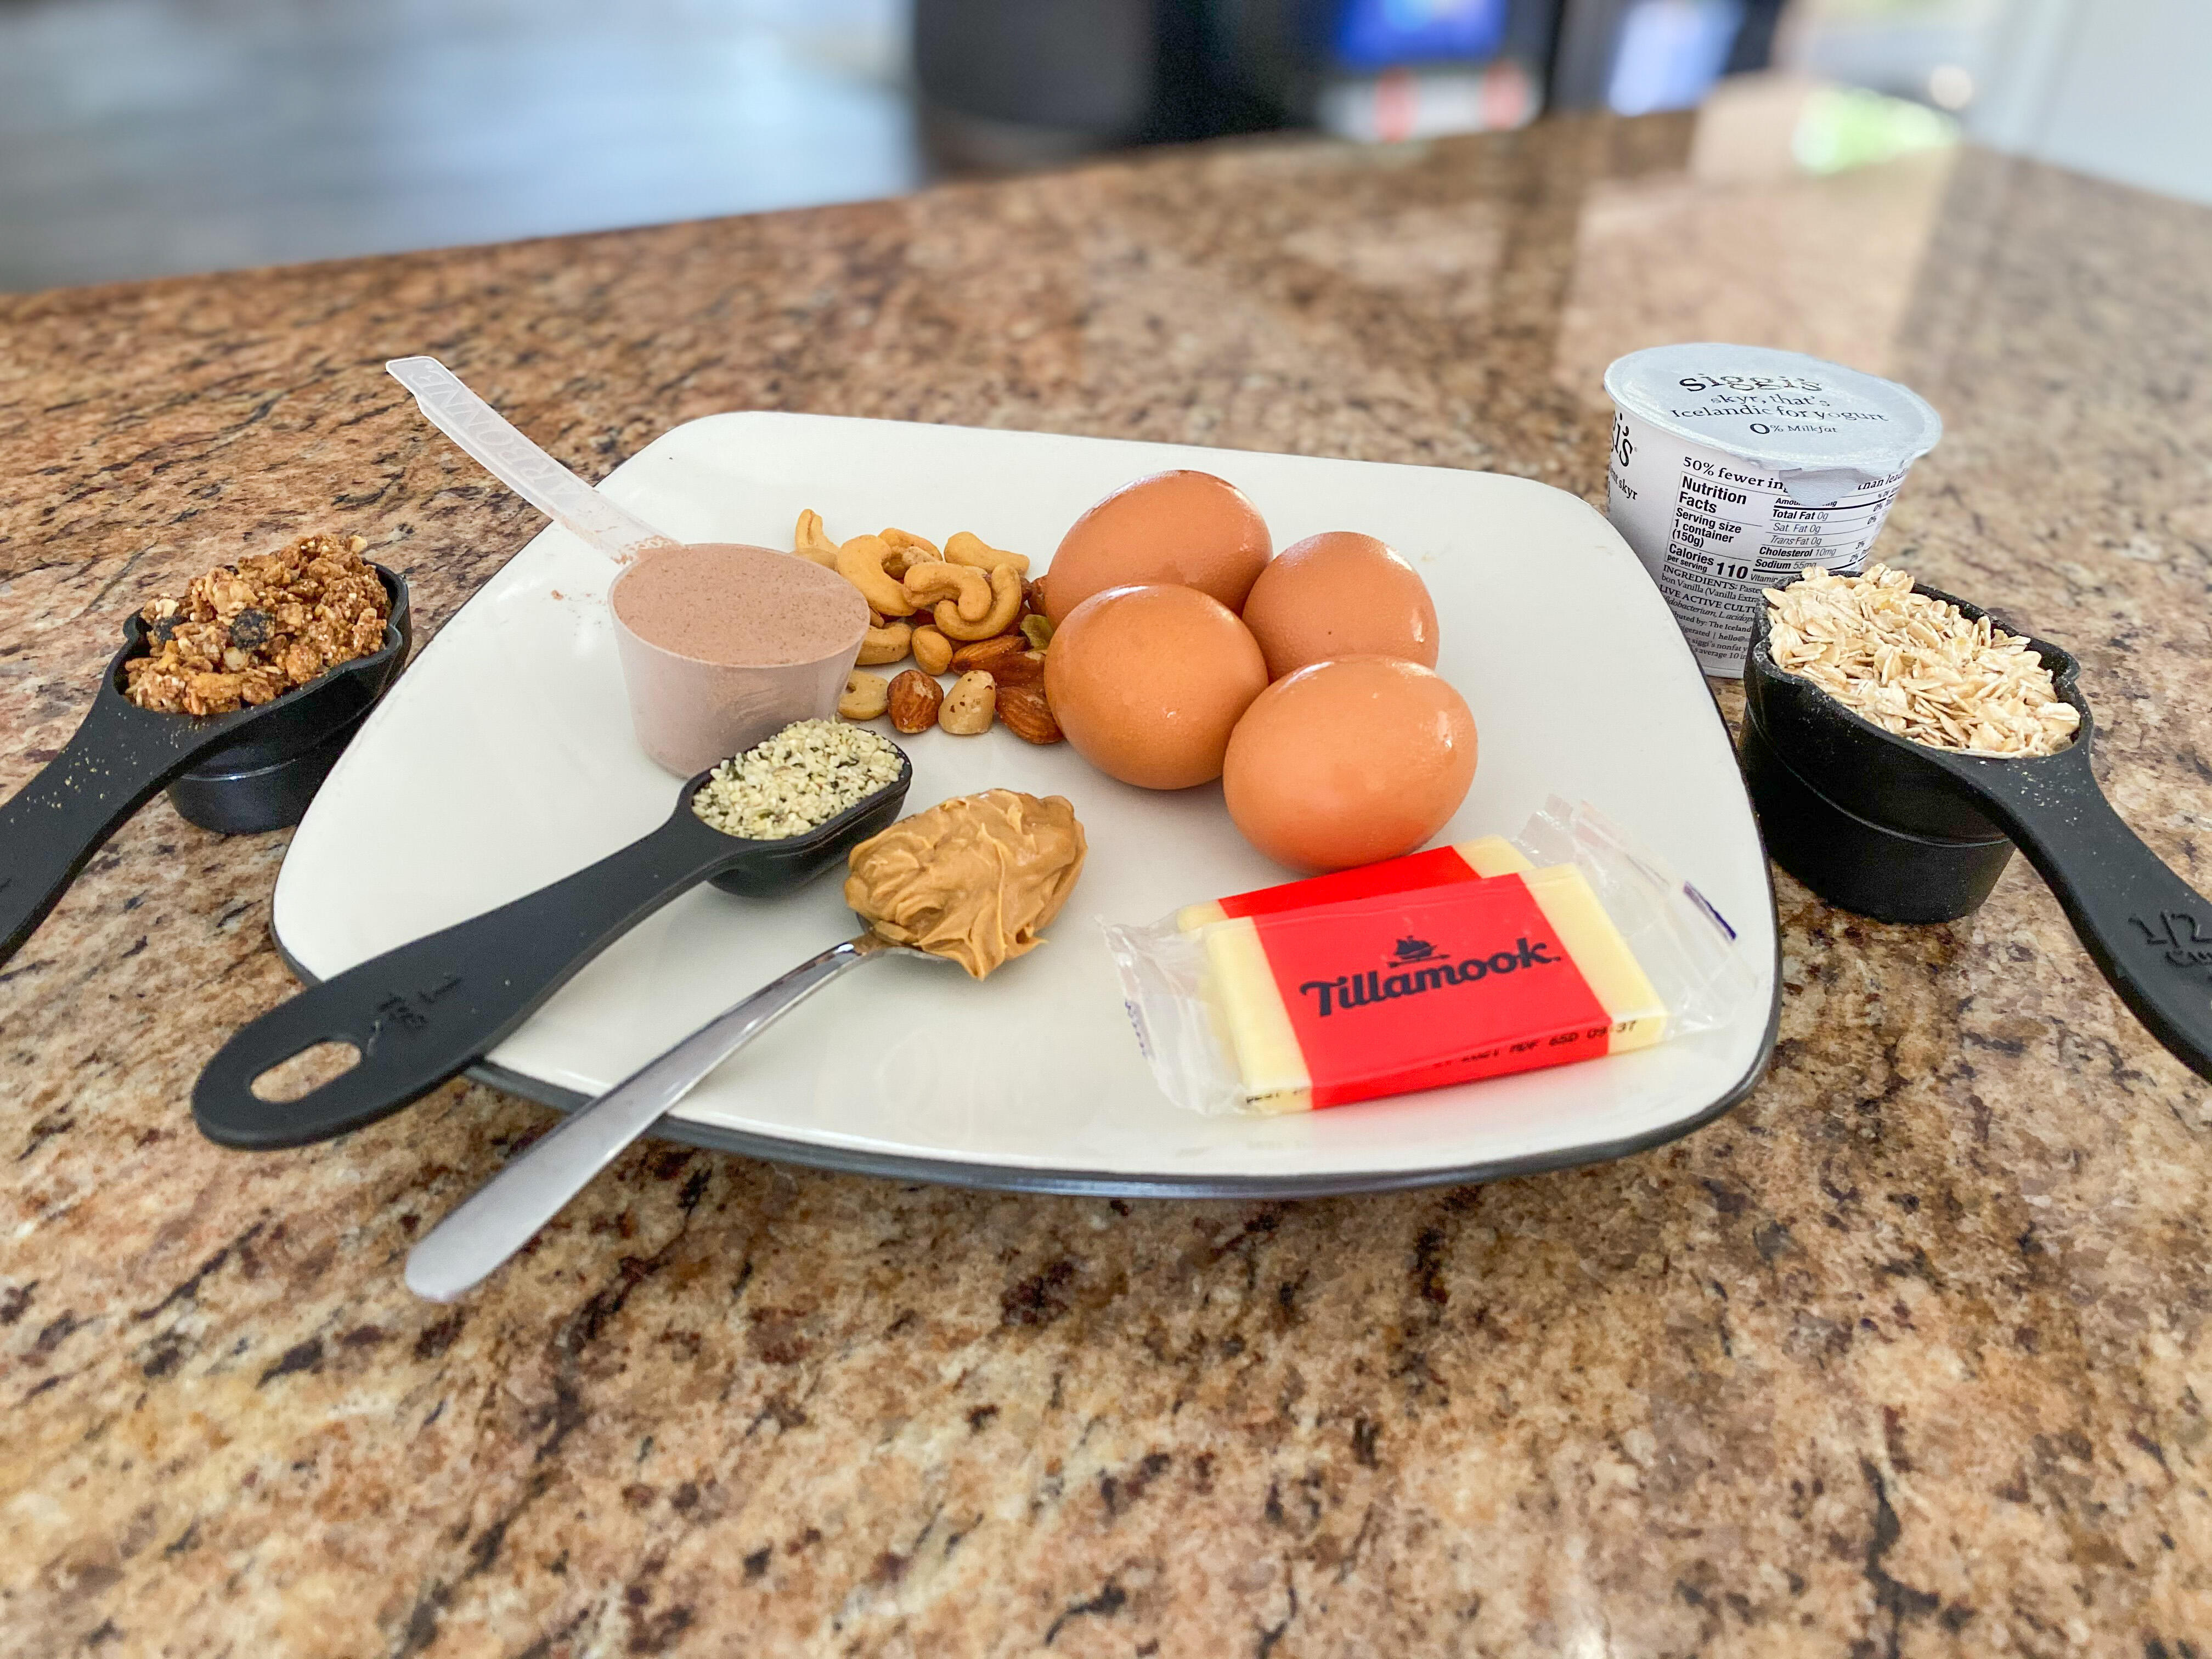 a spread of food containing granola, protein powder, hemp seeds, peanut butter, cheese, nuts, eggs, oats, and yogurt depicting 100 grams of protein